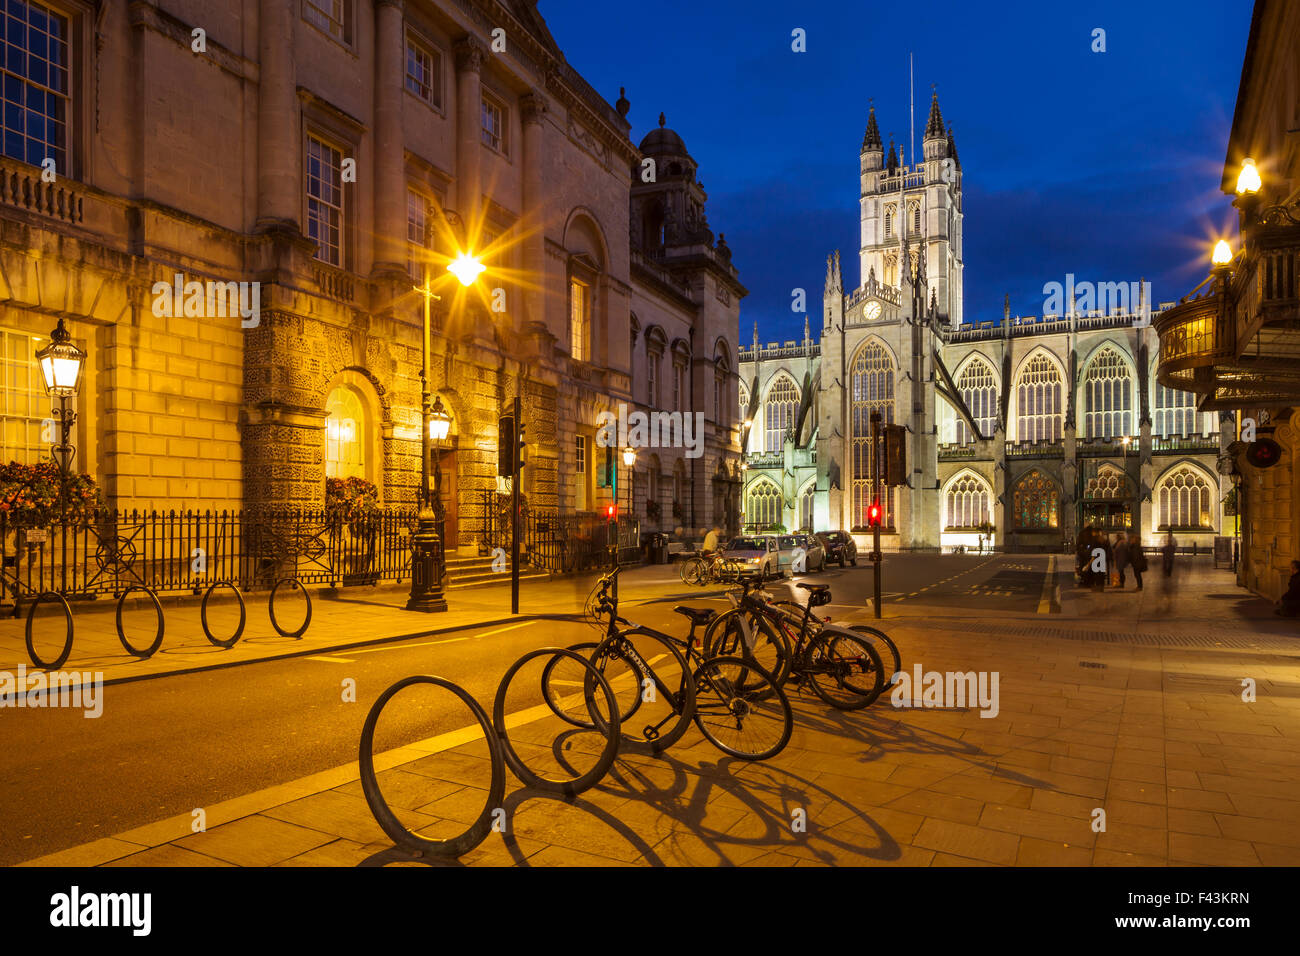 Abend in Bath Abbey und Guildhall in Bath, England. Stockbild